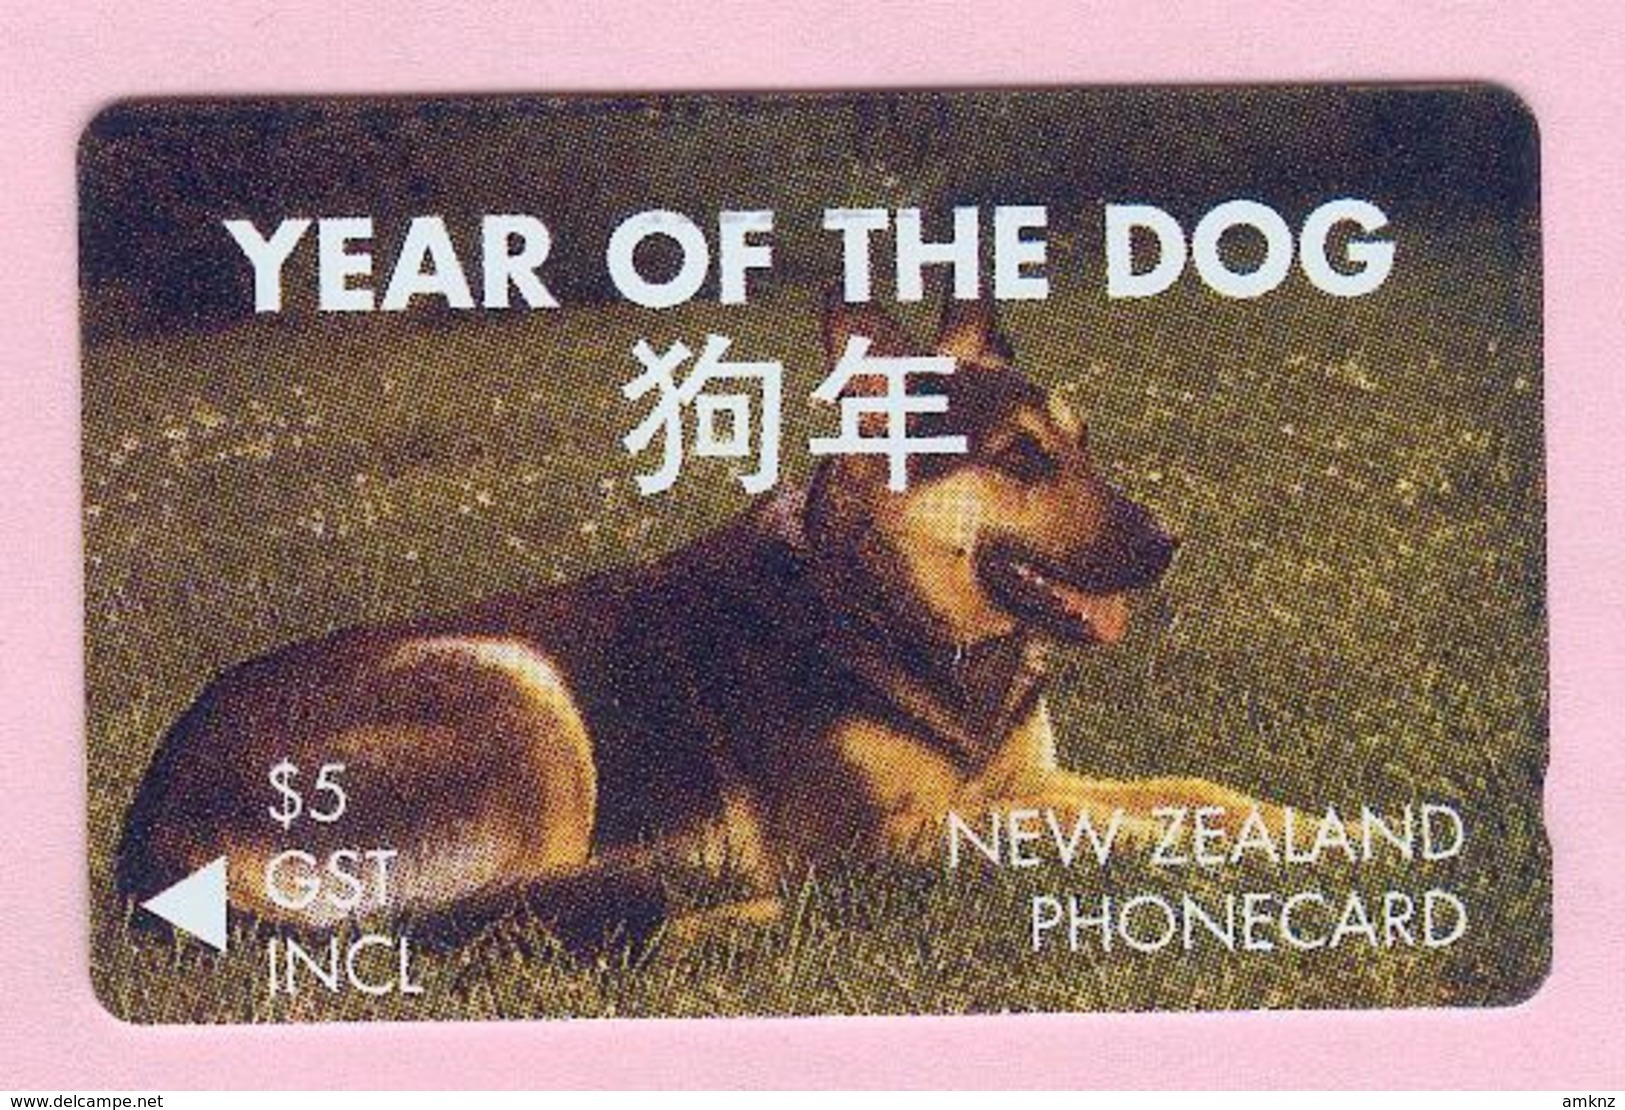 New Zealand - Private Overprint - 1994 Christchurch - $5 Year Of The Dog - Mint - NZ-CO-26b - Neuseeland